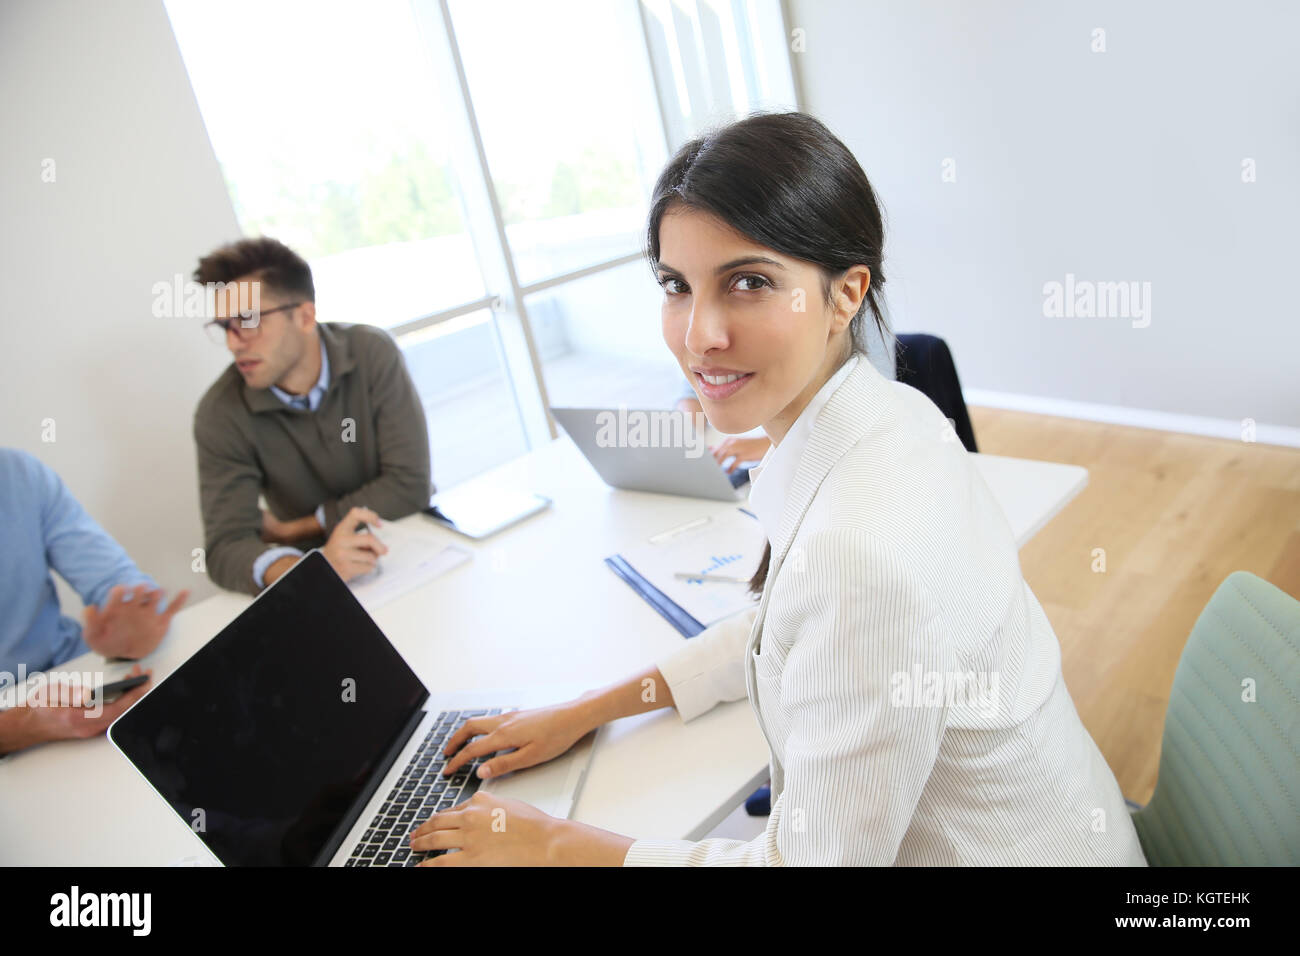 Shared Workspace Stock Photos Amp Shared Workspace Stock